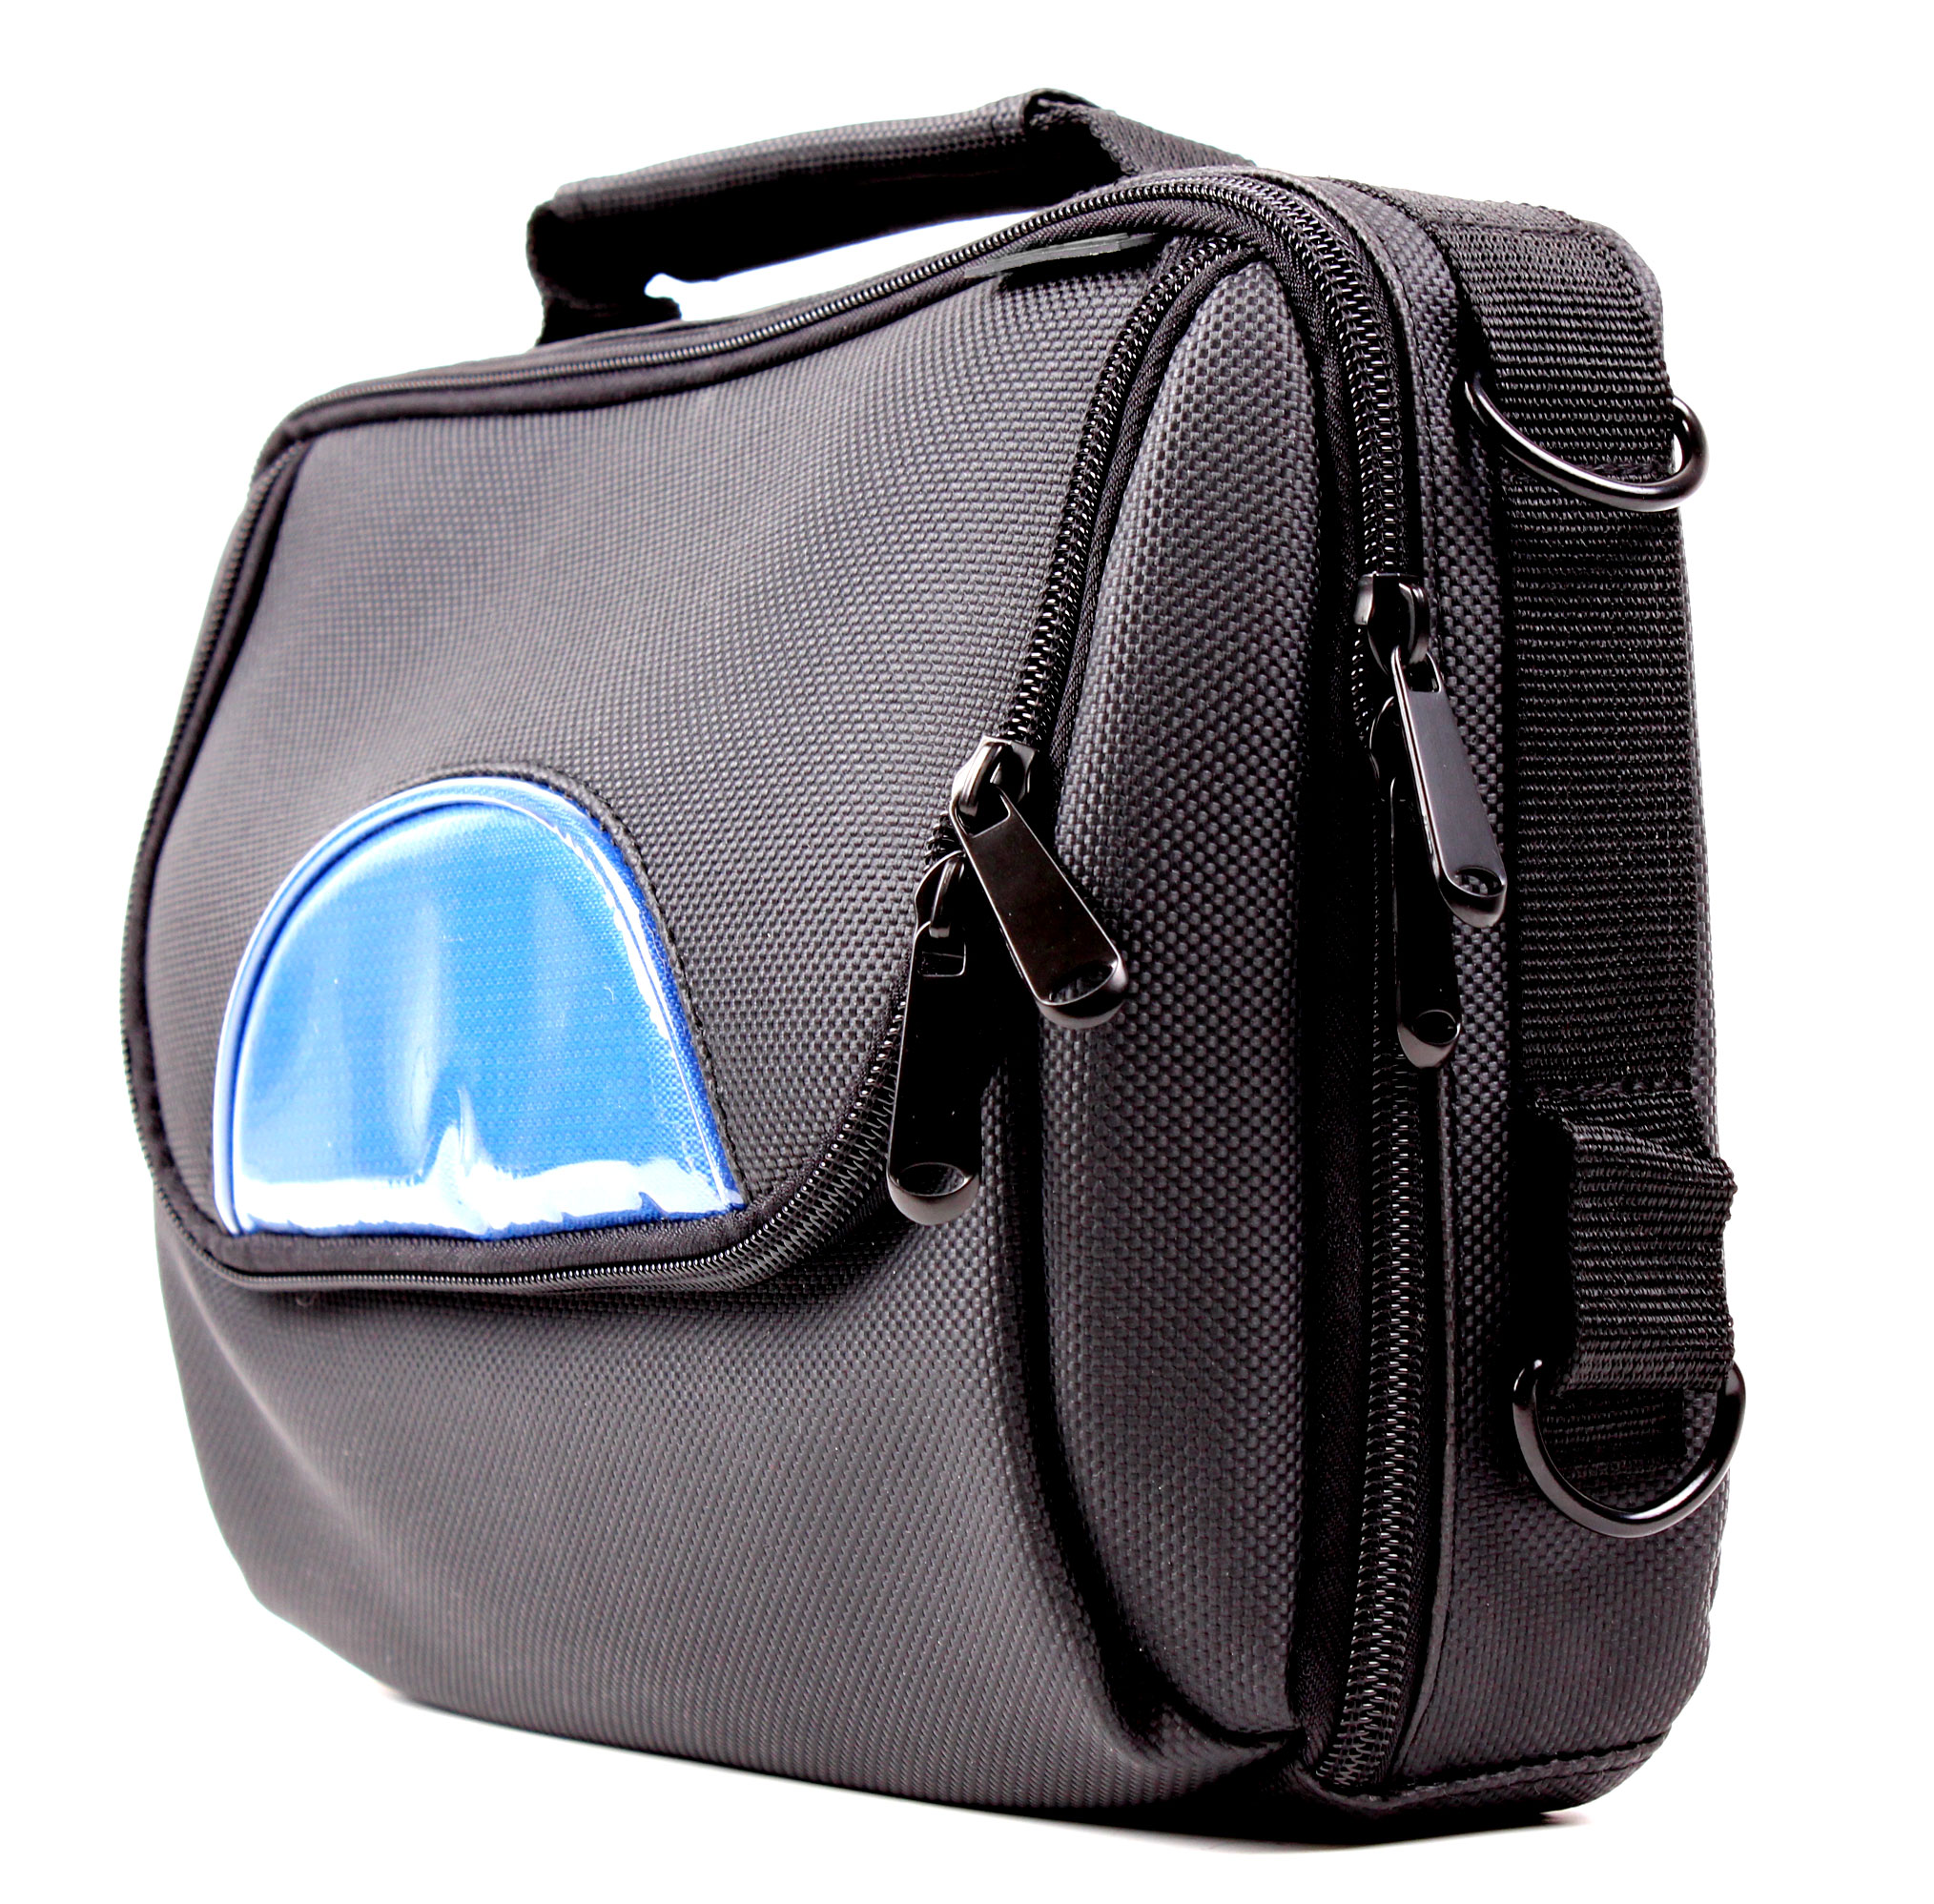 Portable Dvd Player Car Headrest Case